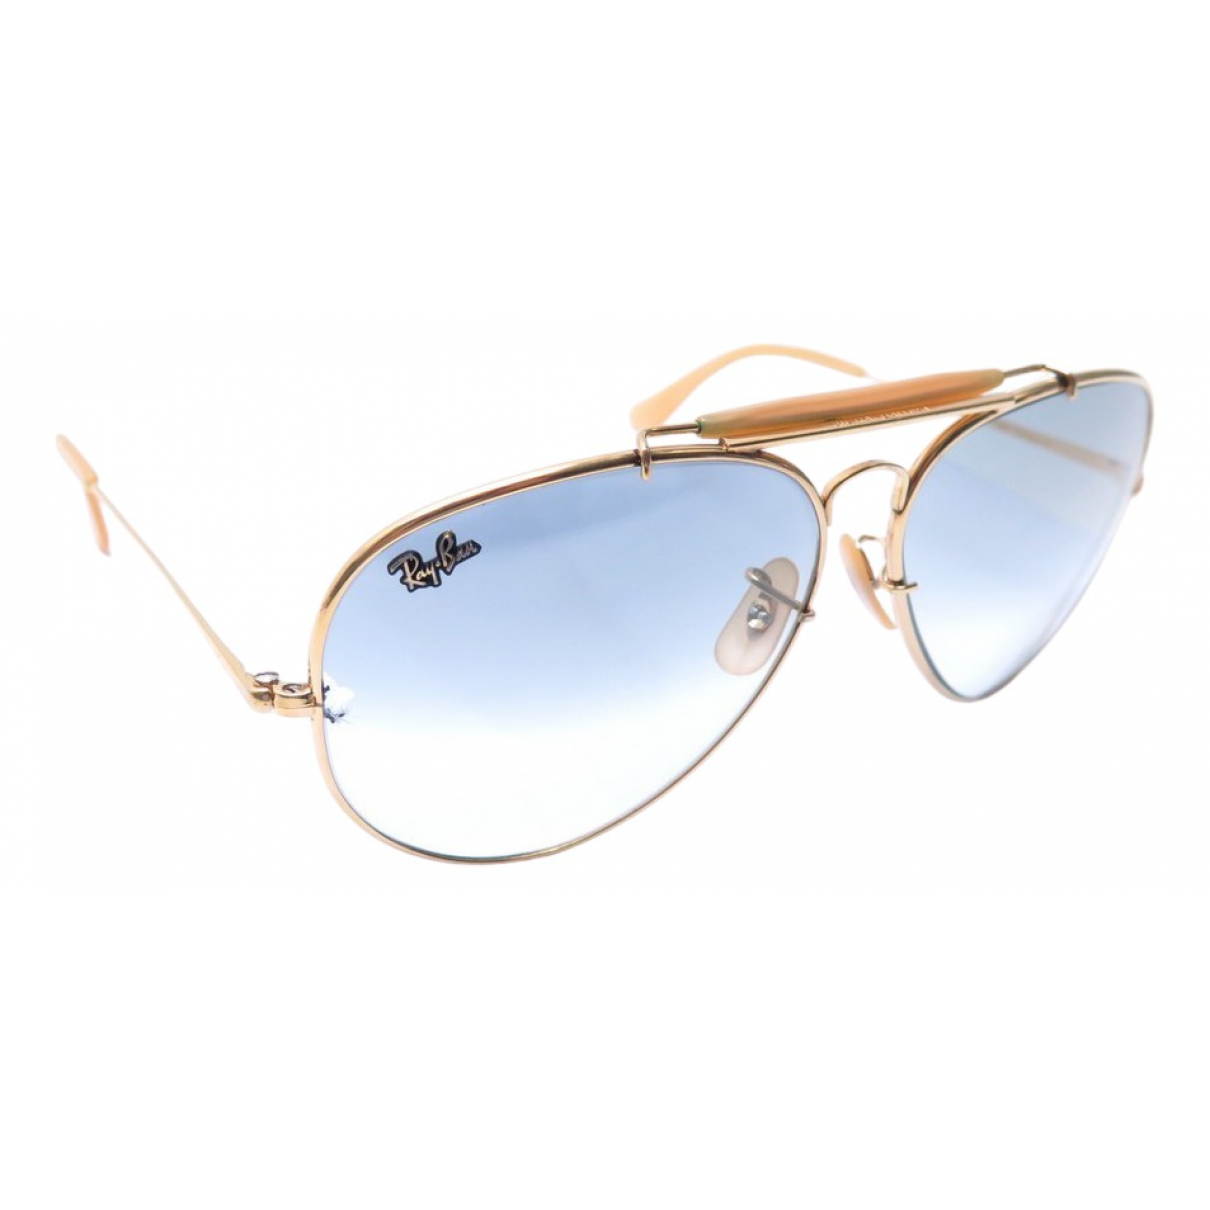 Ray-ban General Sonnenbrillen in  Gold Metall